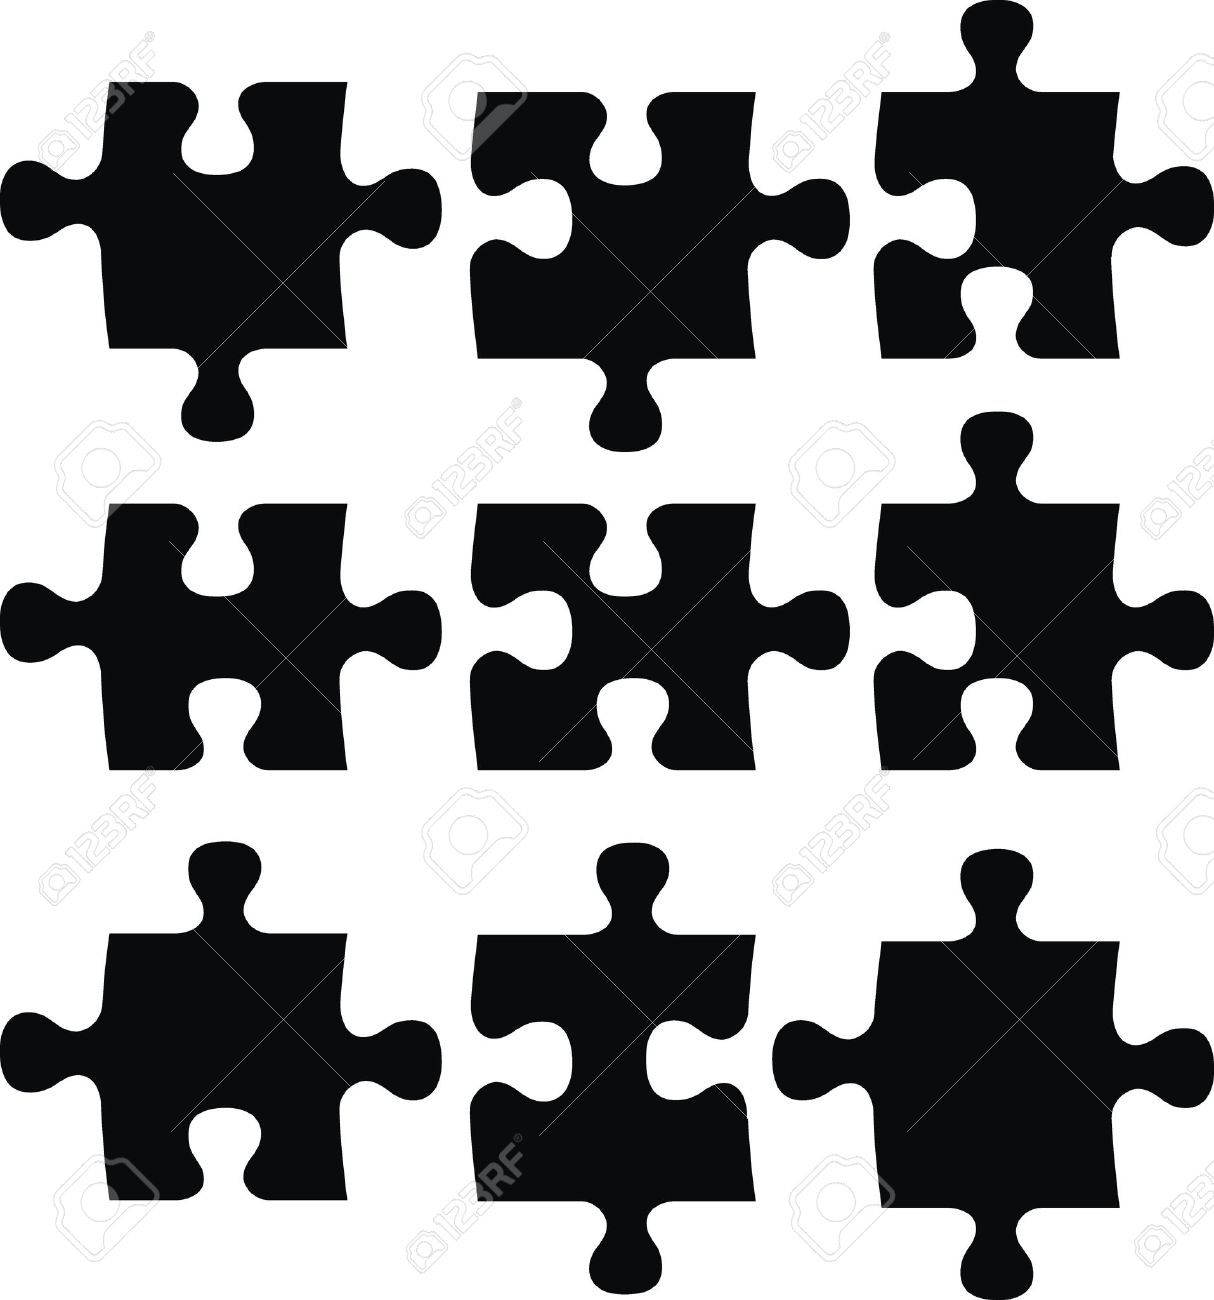 puzzle pieces vector file very easy to edit individual objects rh 123rf com vector puzzle pieces free download vector puzzle piece generator